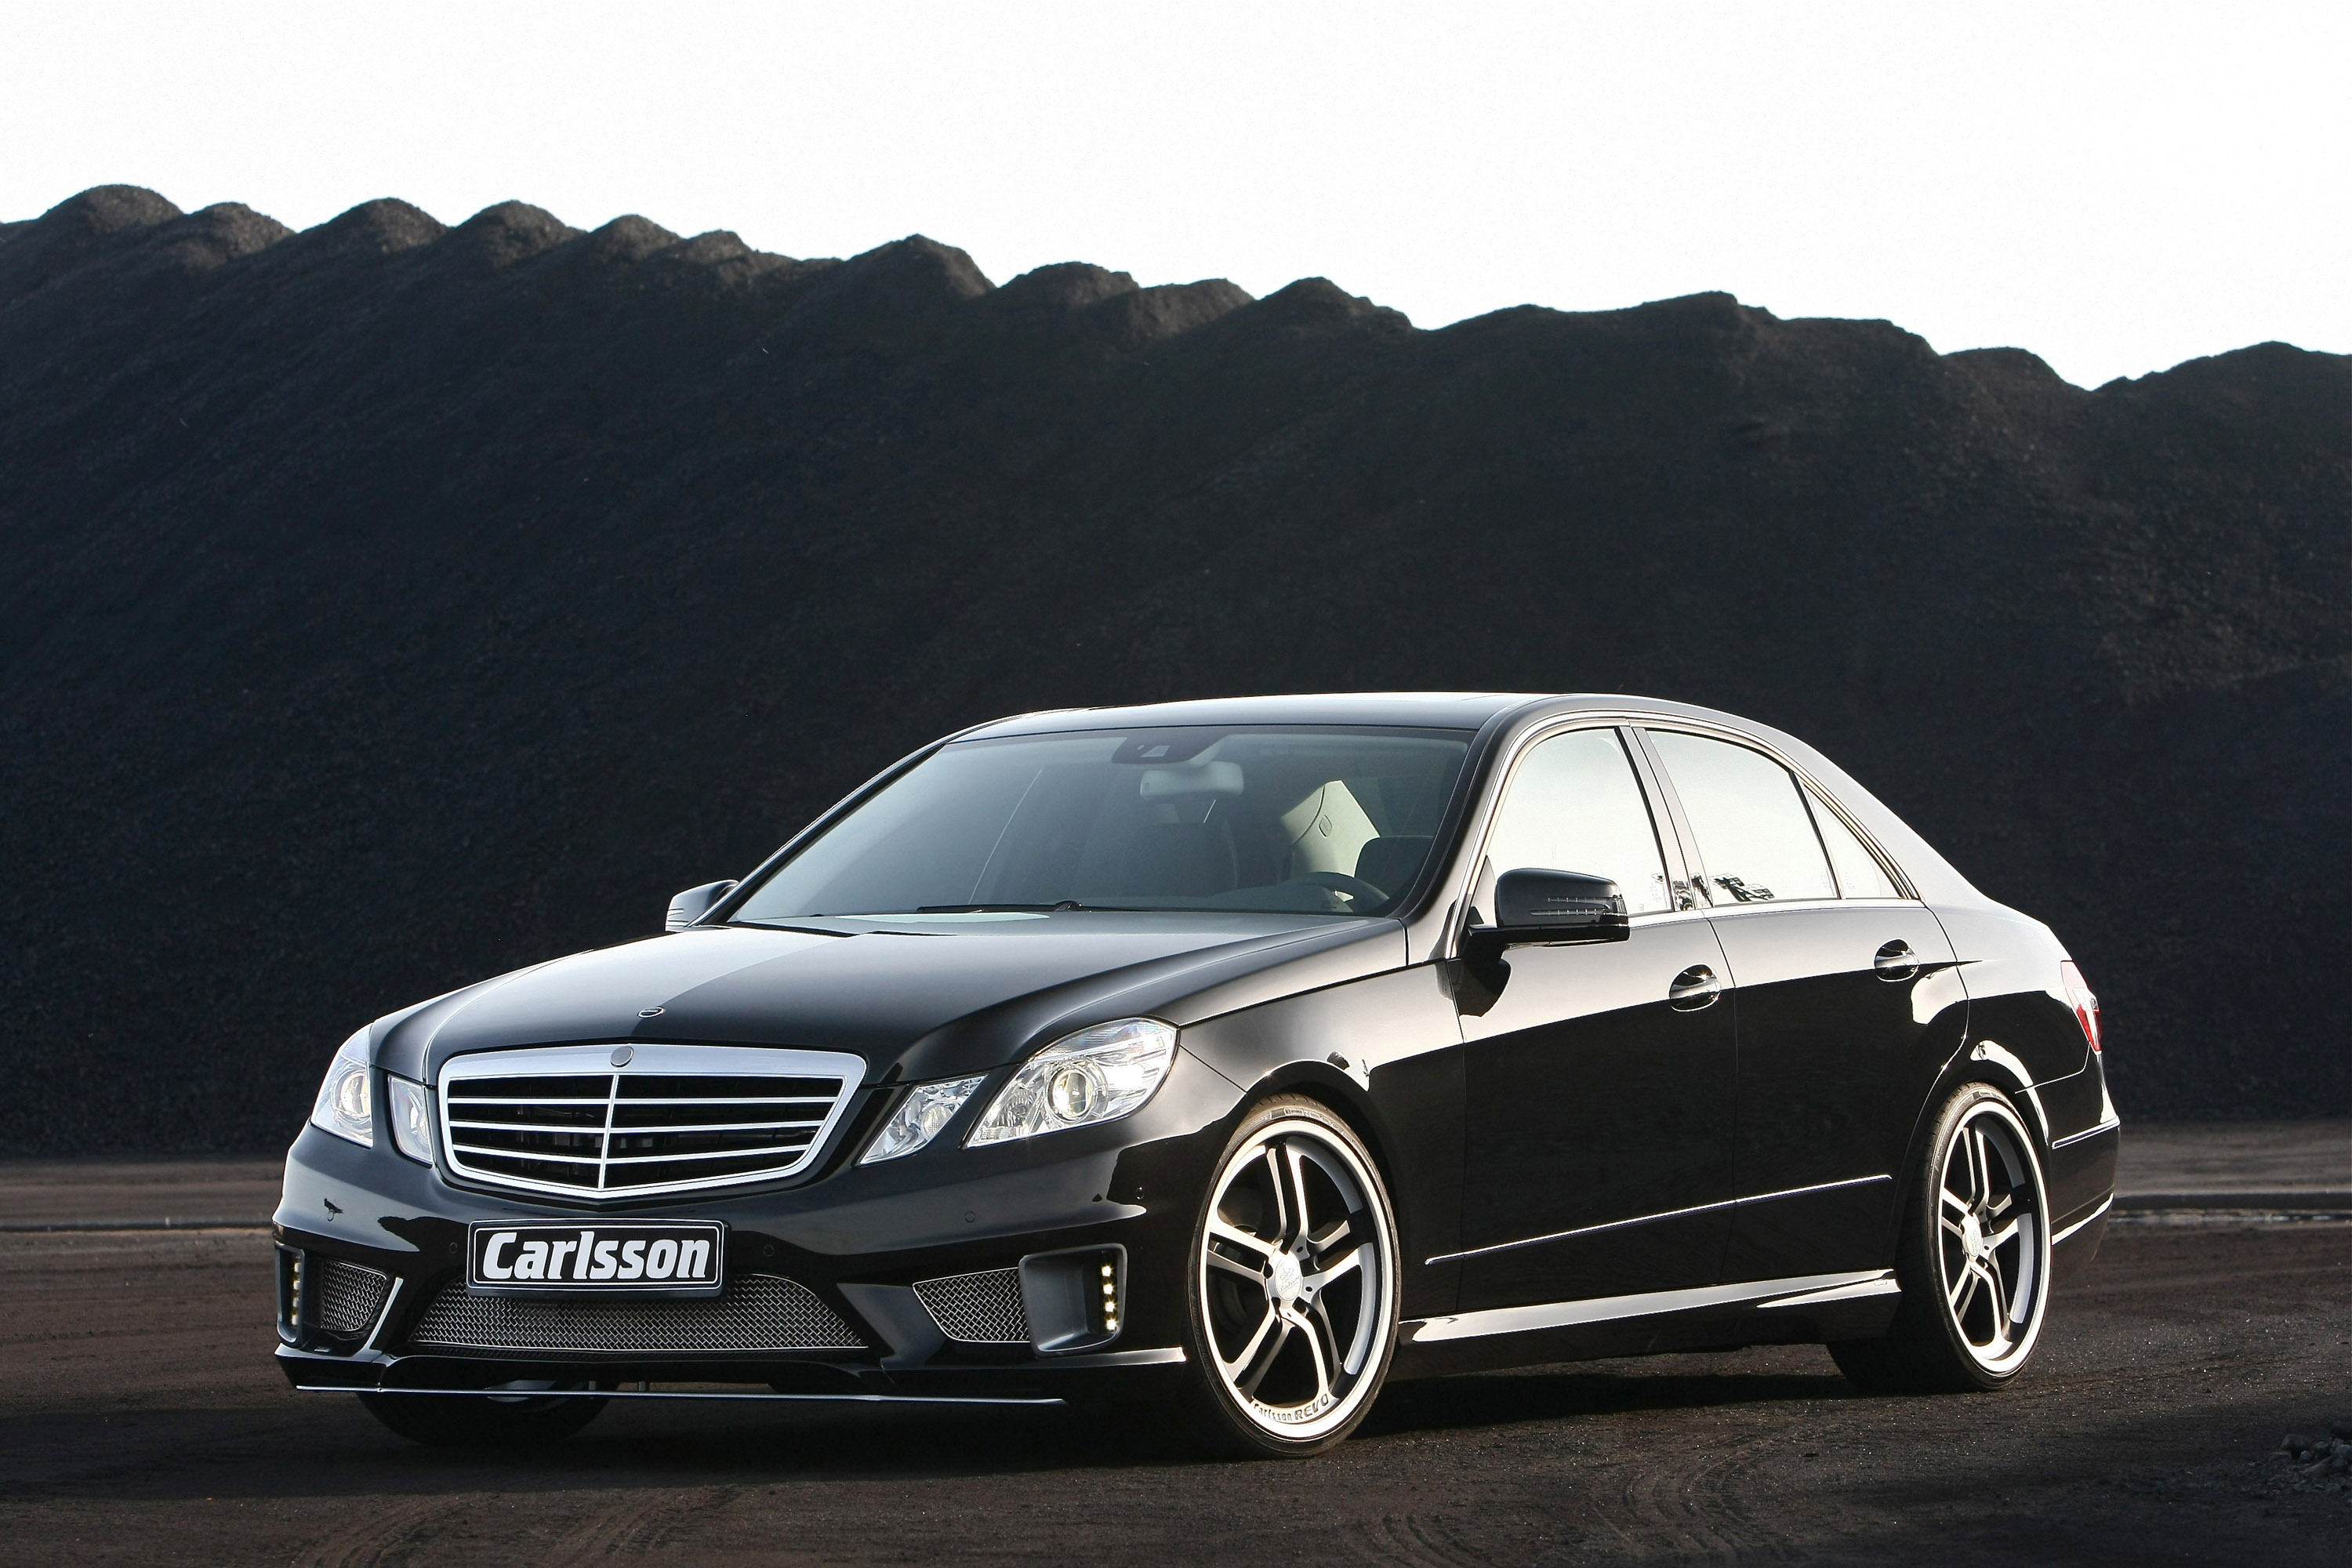 Carlsson Mercedes Benz E Ck63 Rs Picture 25426